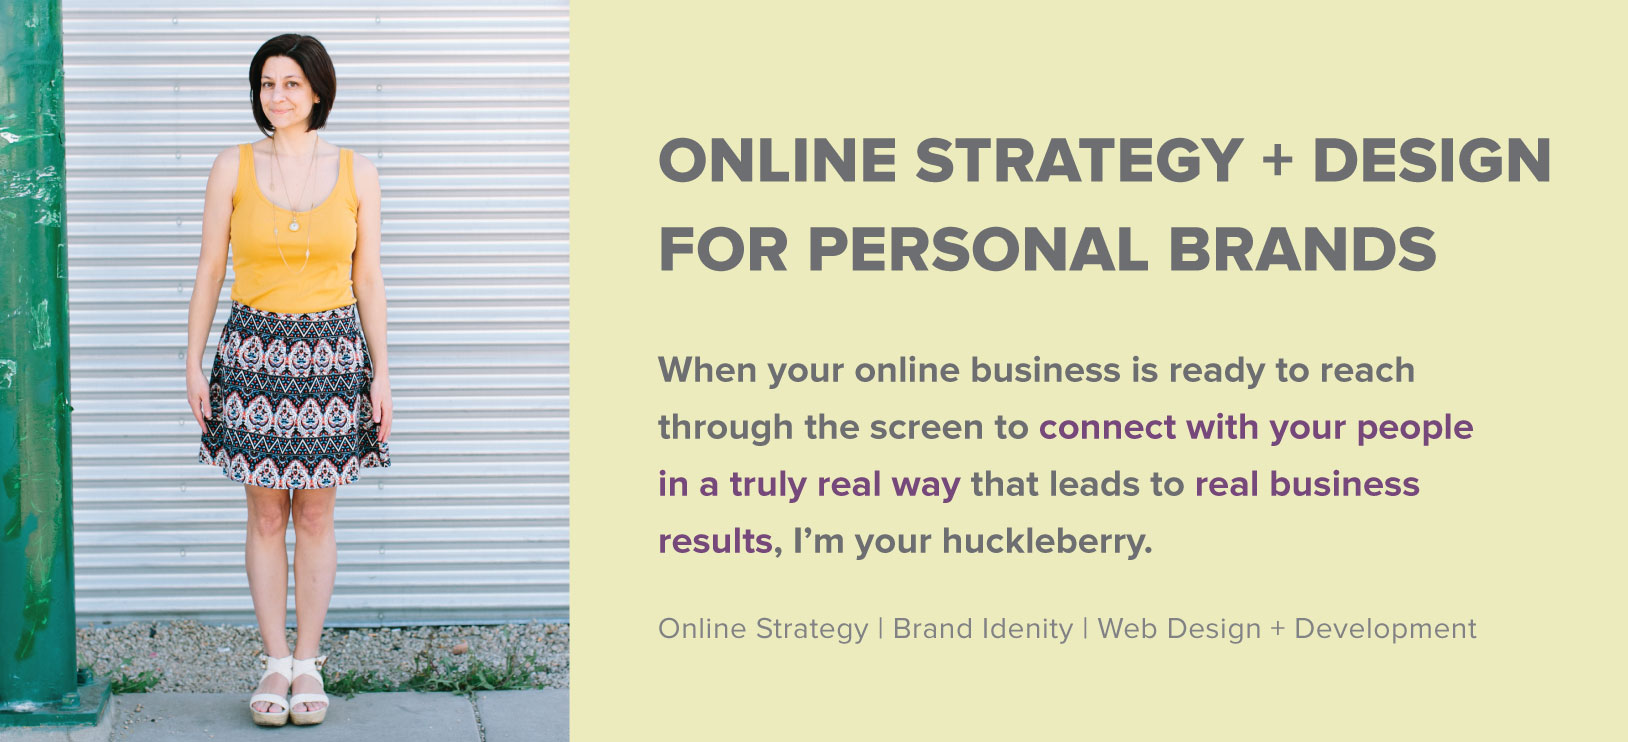 Online Strategy and Design for Personal Brands